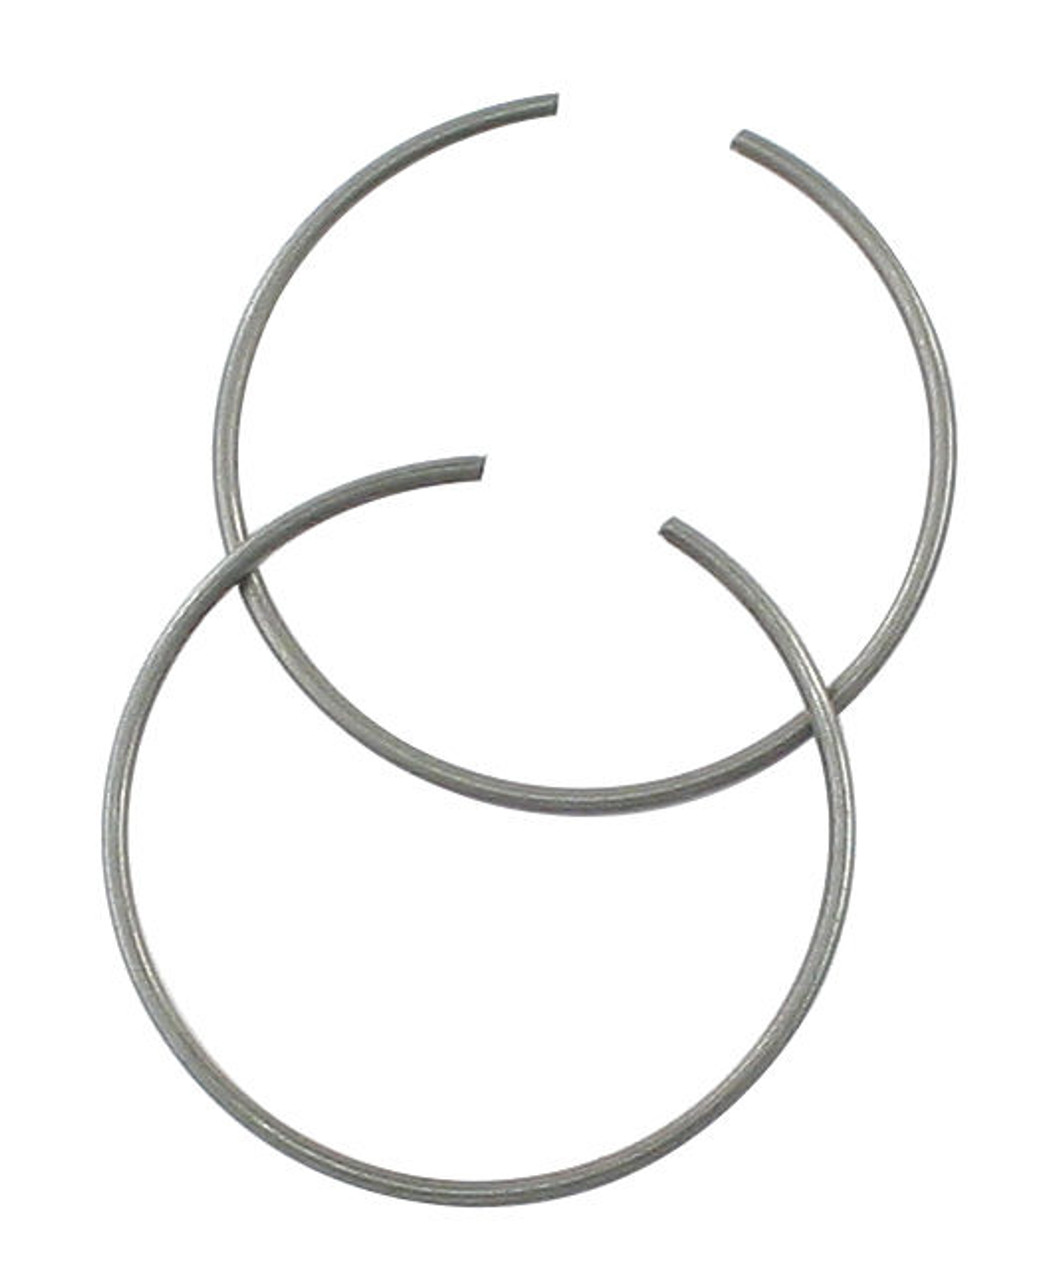 EMPI VW Bug Air Filter Base 48 IDA W/Velocity Stack Spacers, Gaskets, Pair 3220